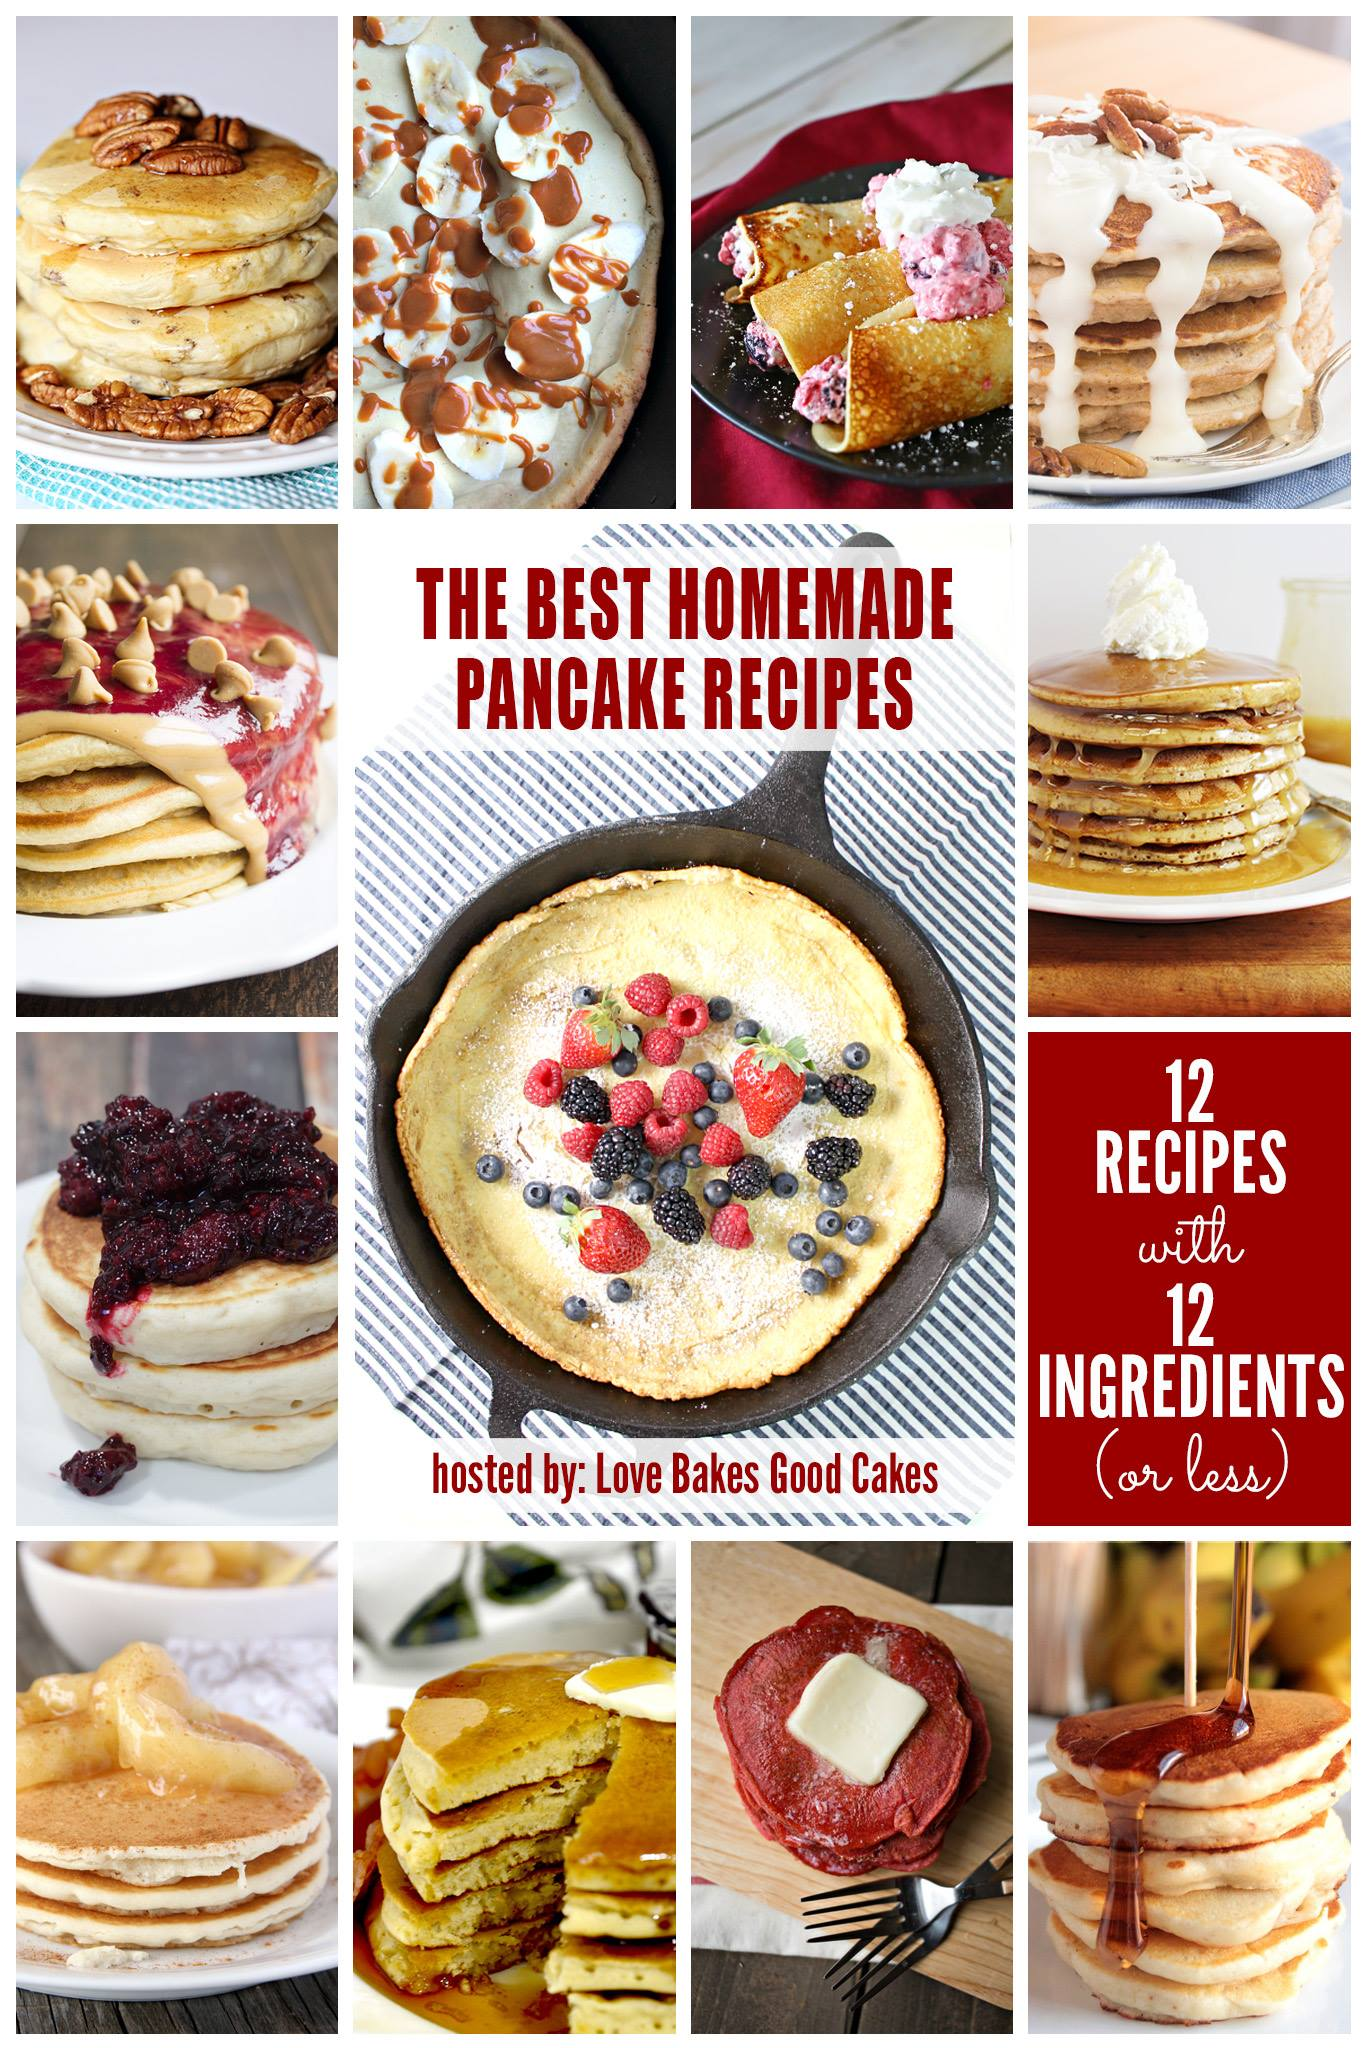 12 Homemade Pancake Recipes to try!